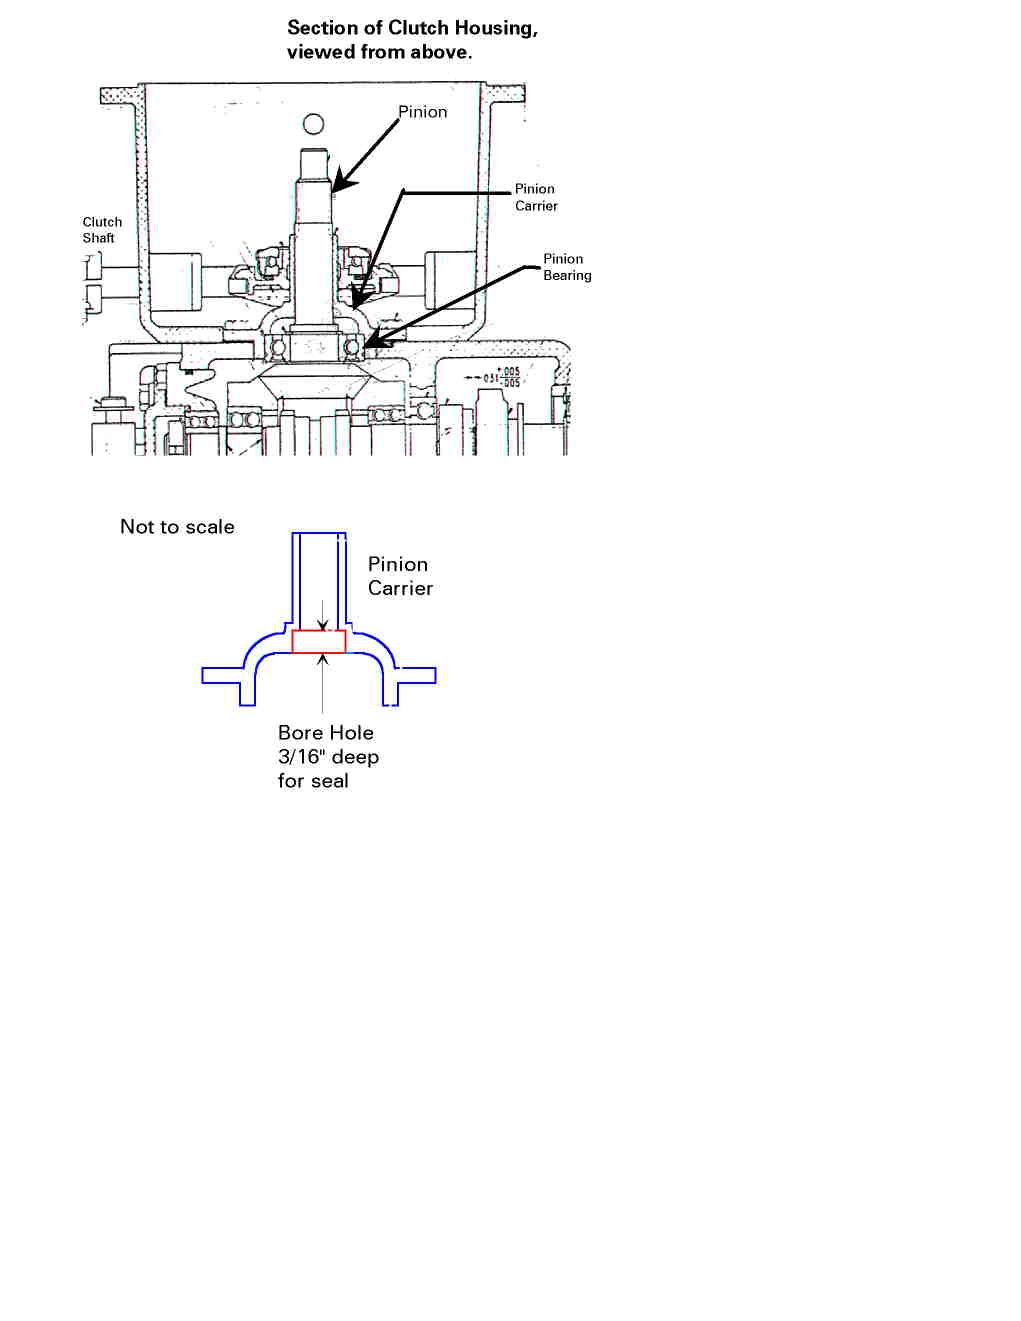 tran1 narcoa technical articles bailey and mackey pressure switch wiring diagram at fashall.co